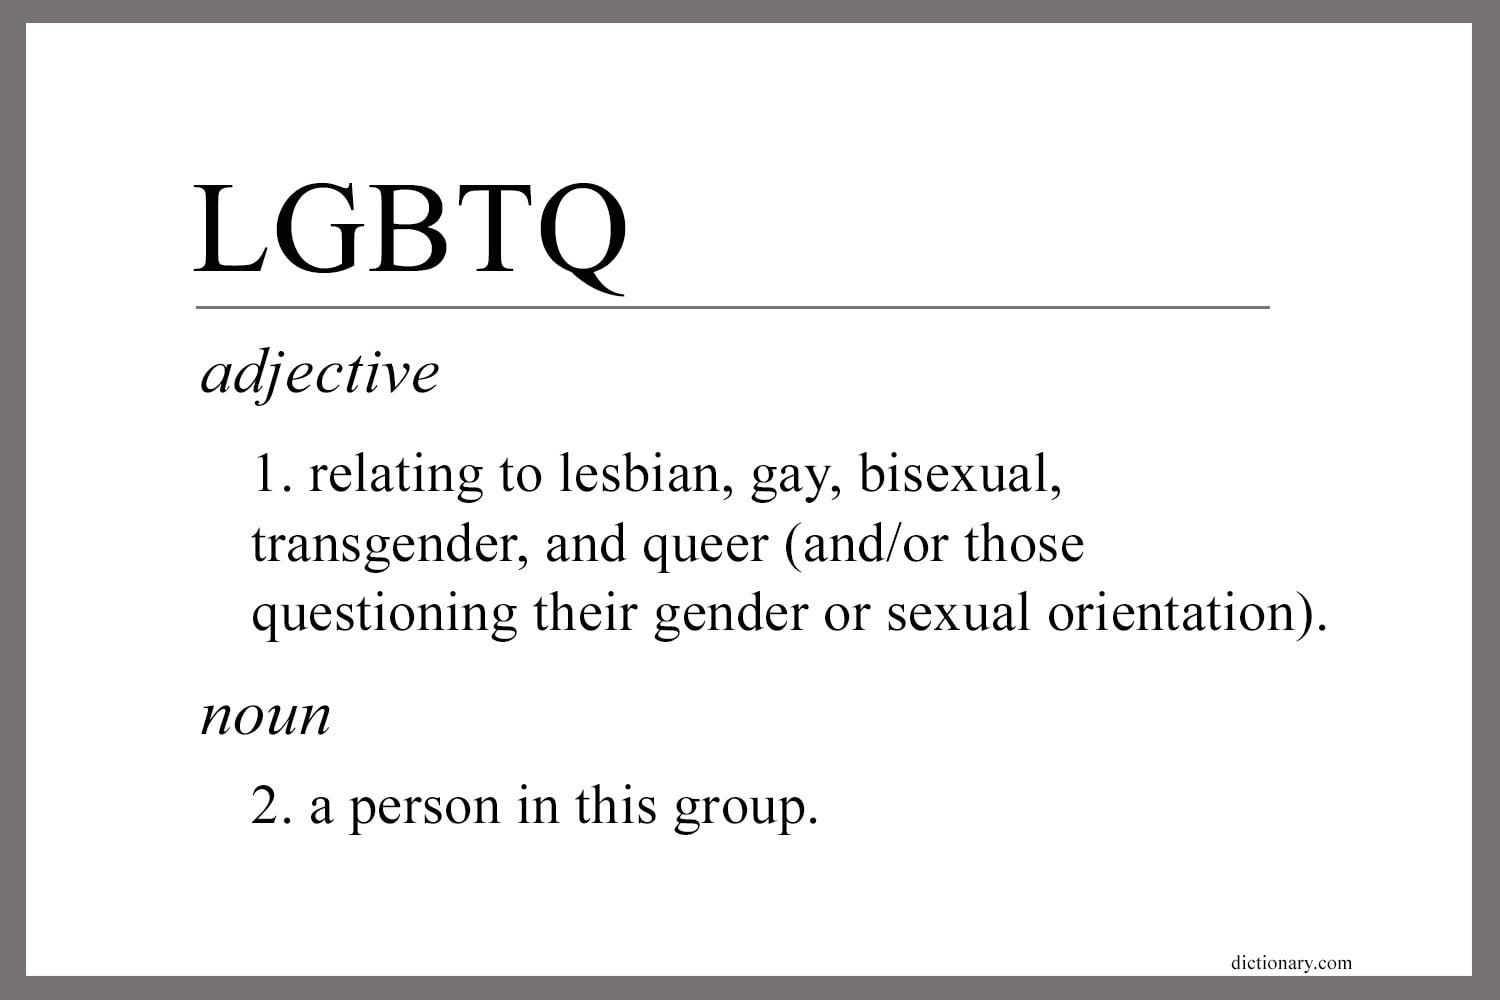 A definition of the initials LGBTQ adapted from dictionary.com. Graphic by Laurens Glass, UM News.